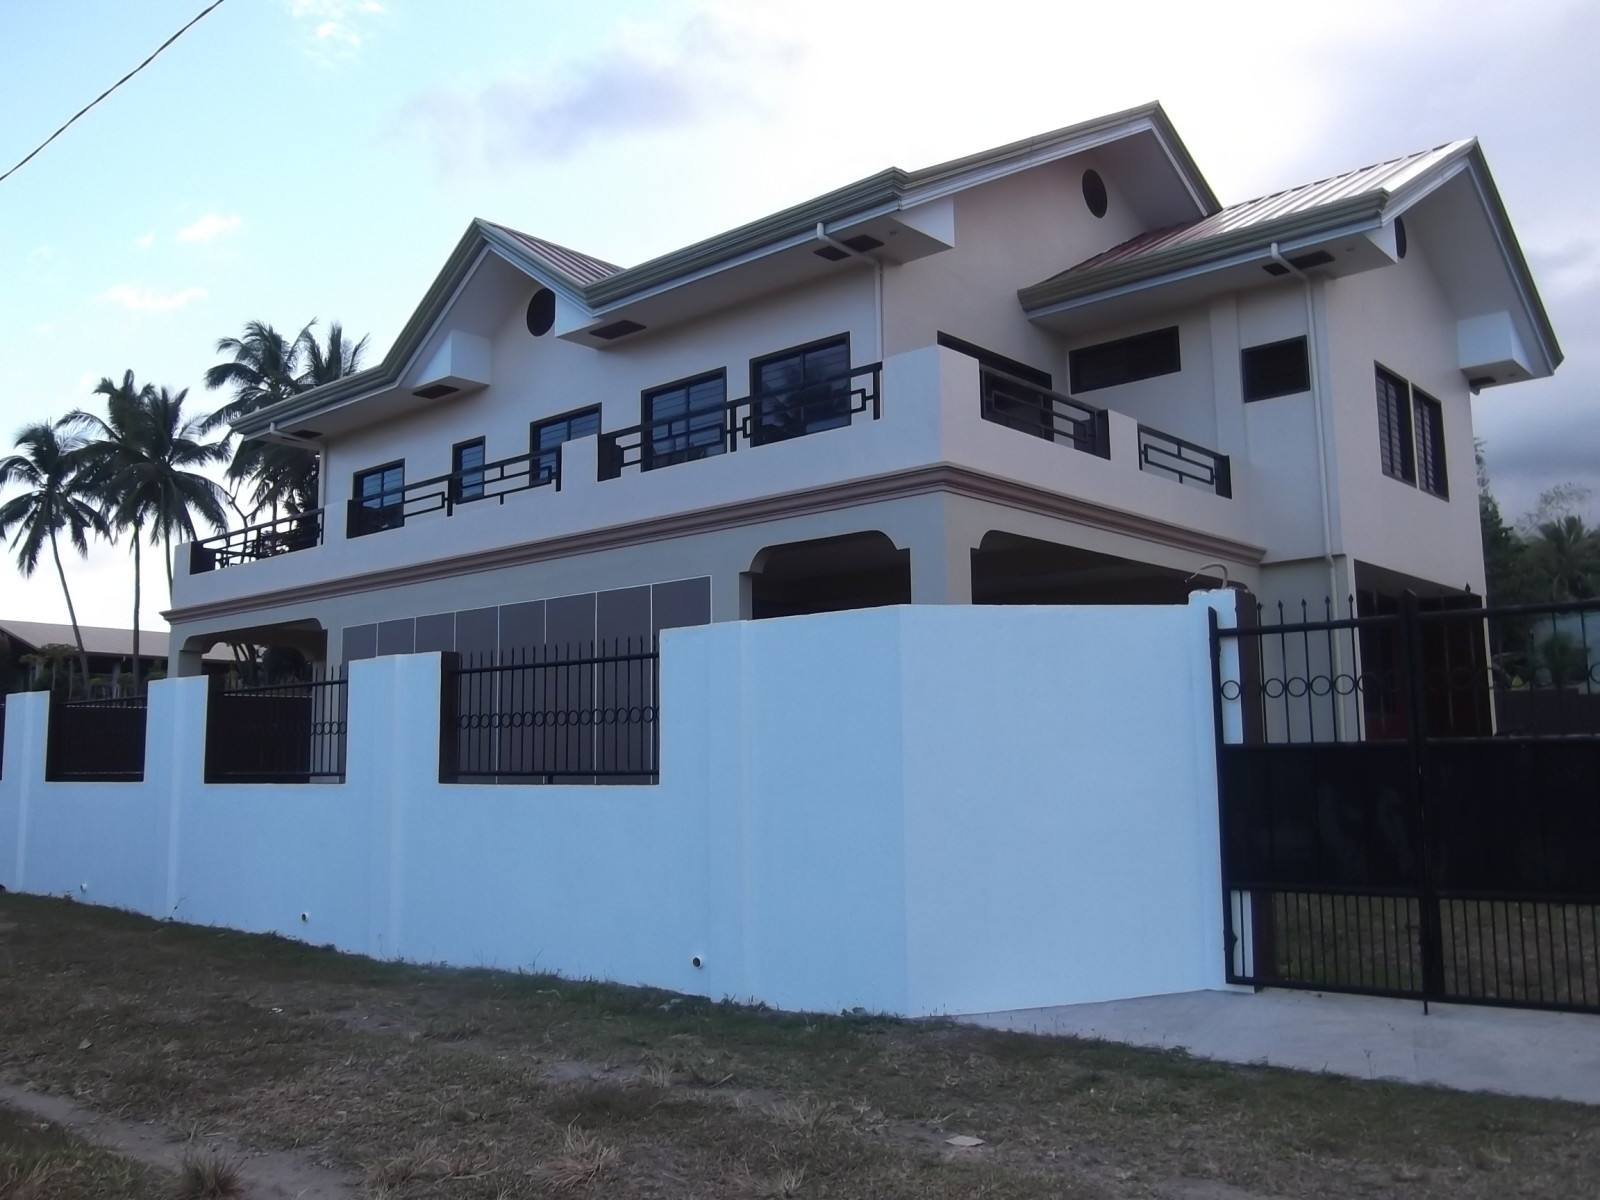 2 STORY VALENCIA HOUSE AND LOT FOR SALE